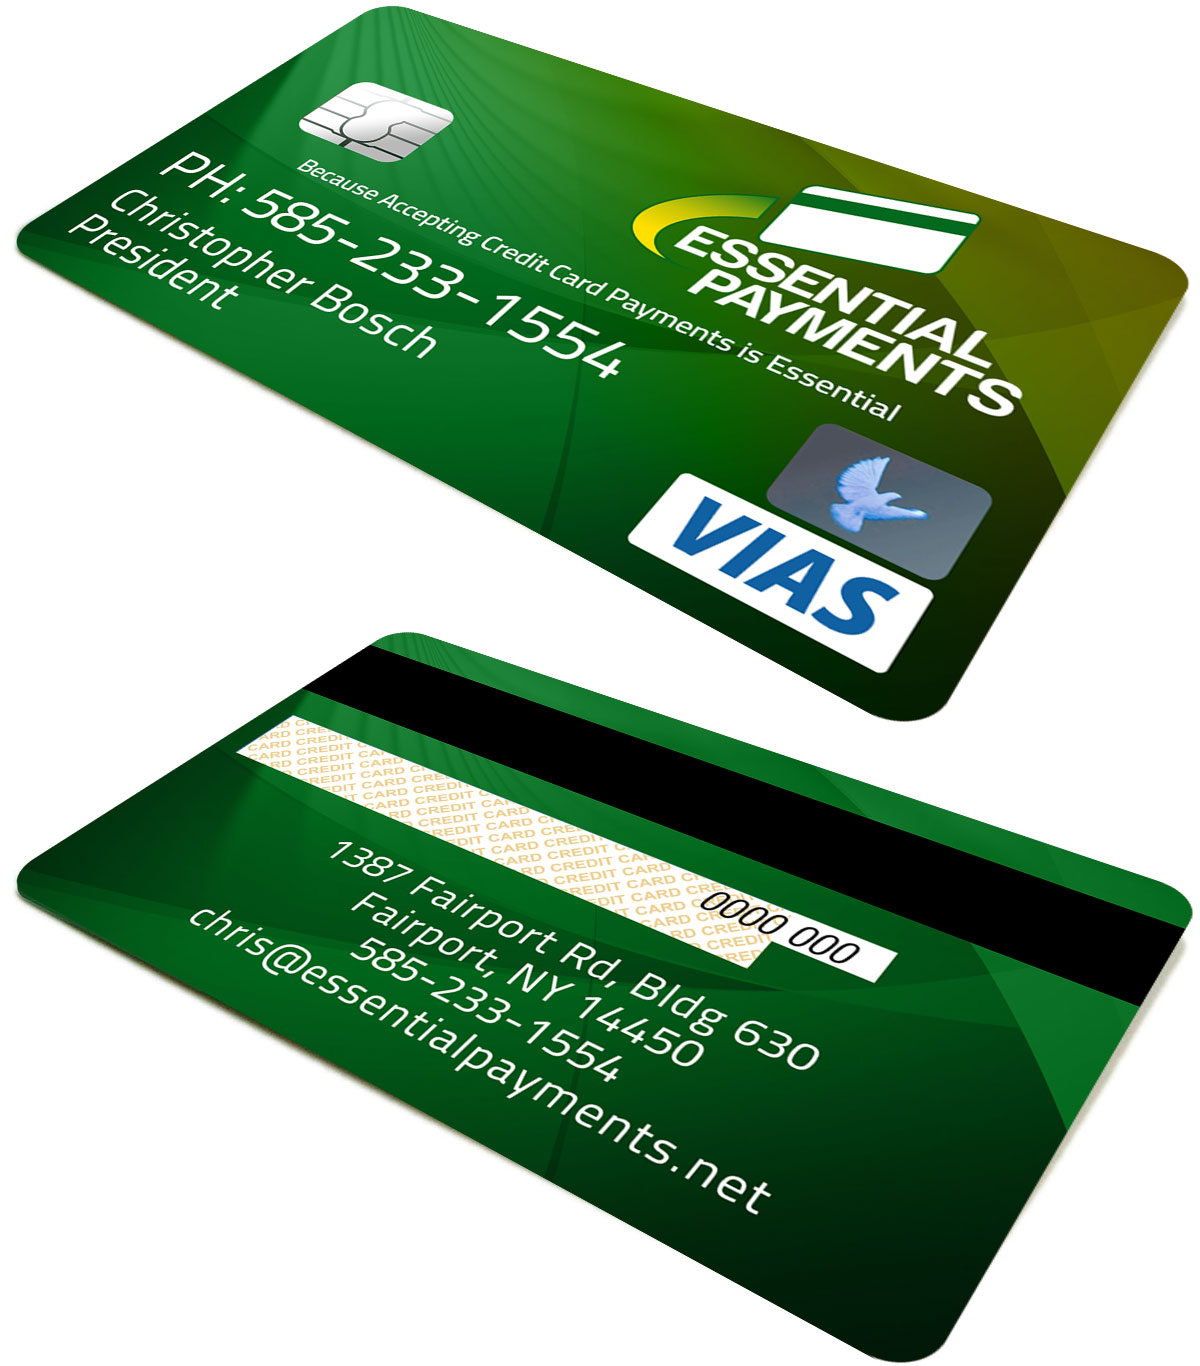 Professional masculine credit card business card design for Corporate business credit cards